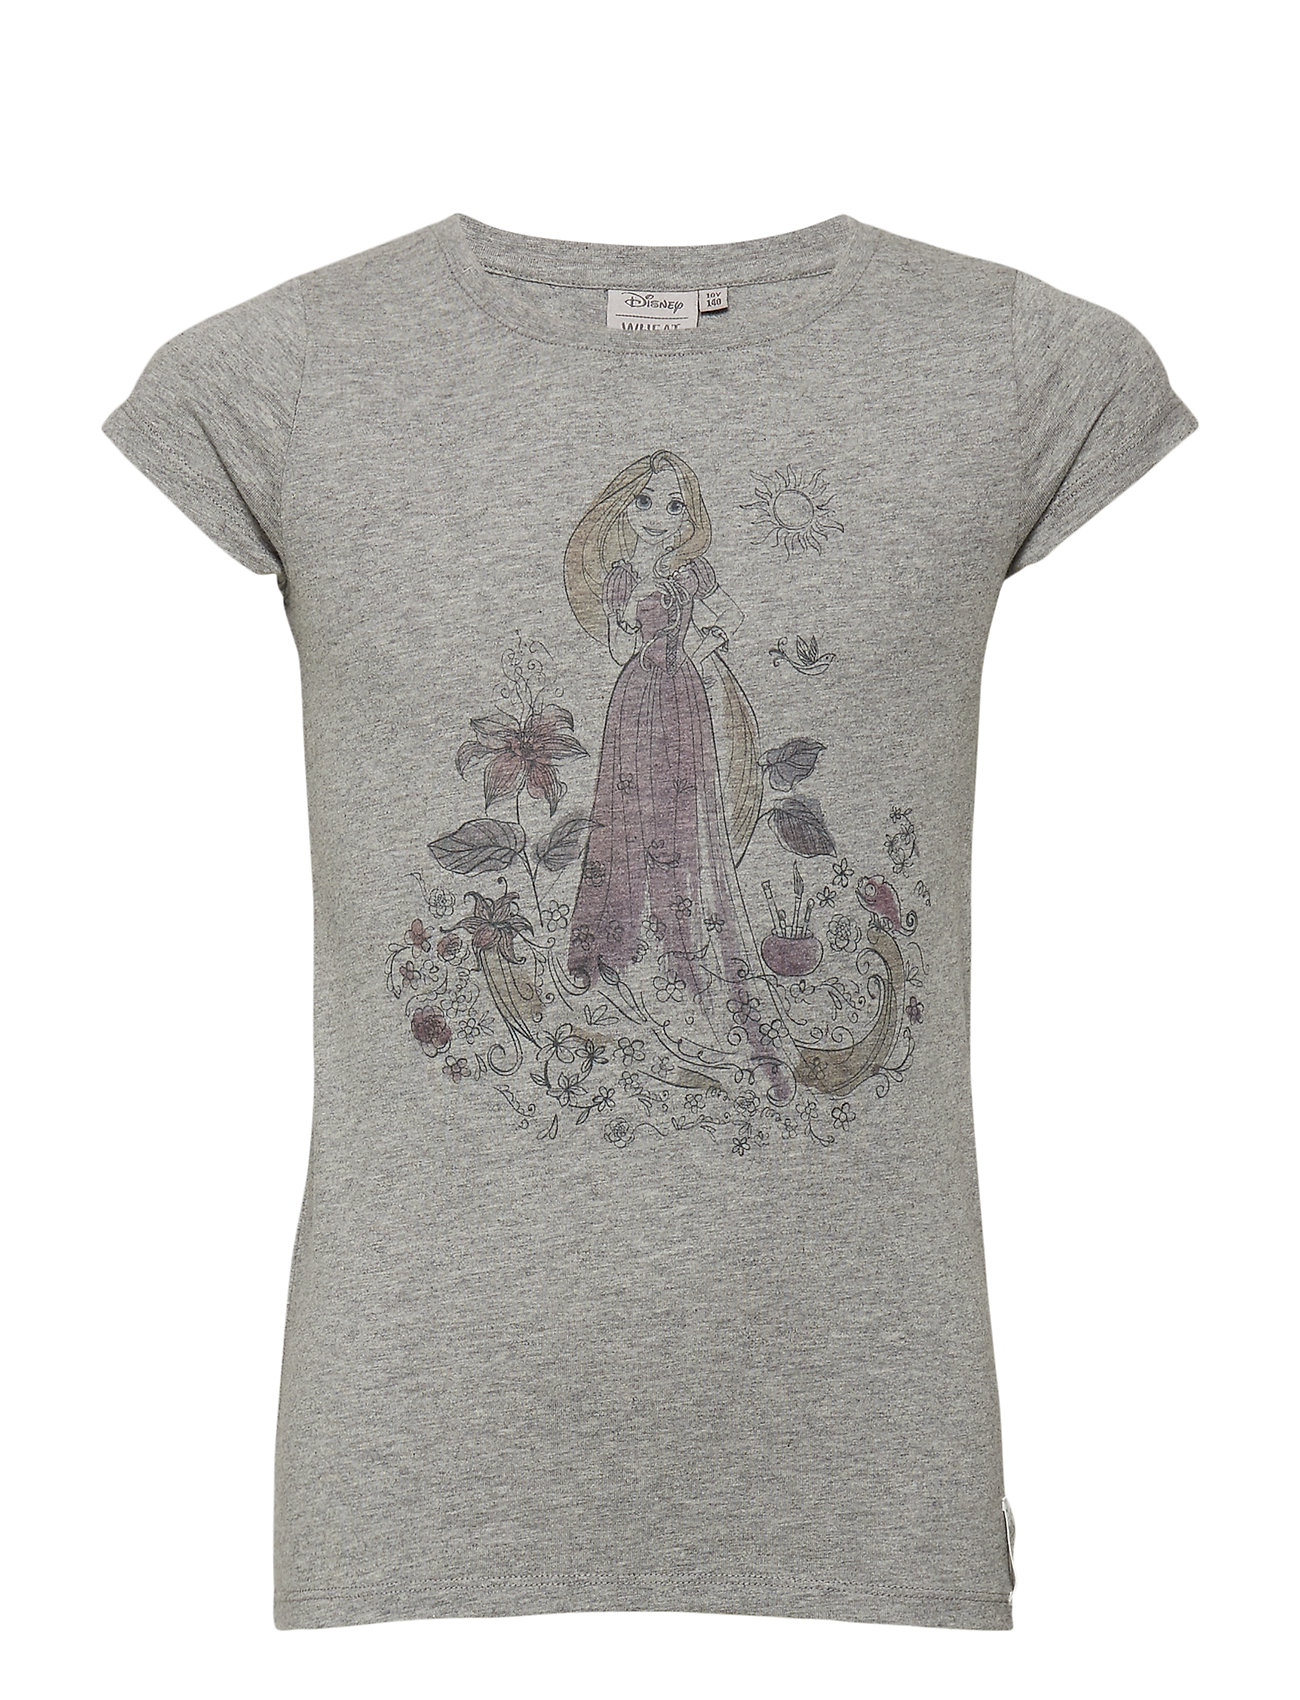 73b924e27 ... t shirt rapunzel melange grey 18 85 disney by wheat boozt com ...